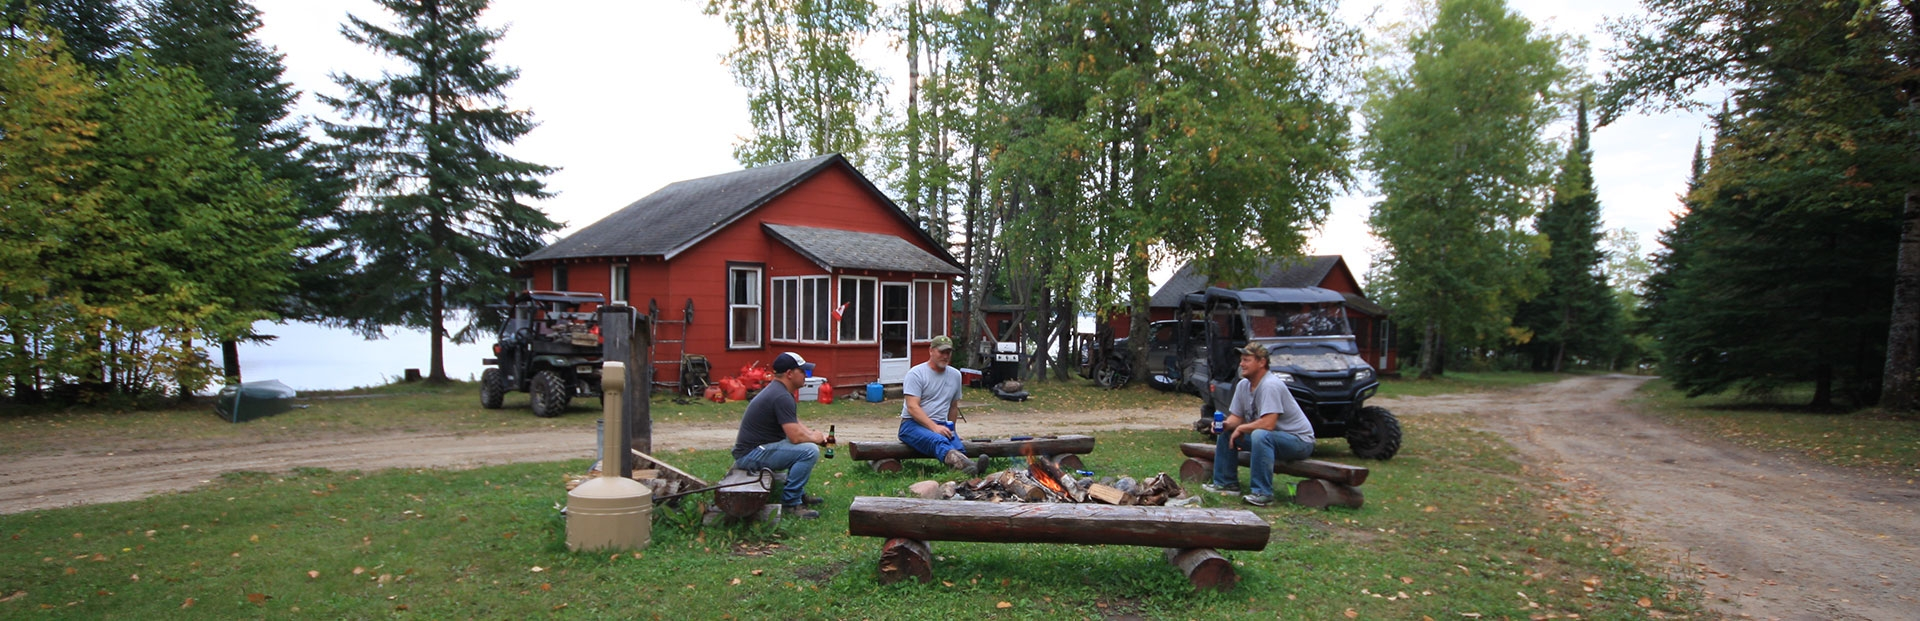 Seven Lakes Wilderness Camps Walleye Cove Lodge